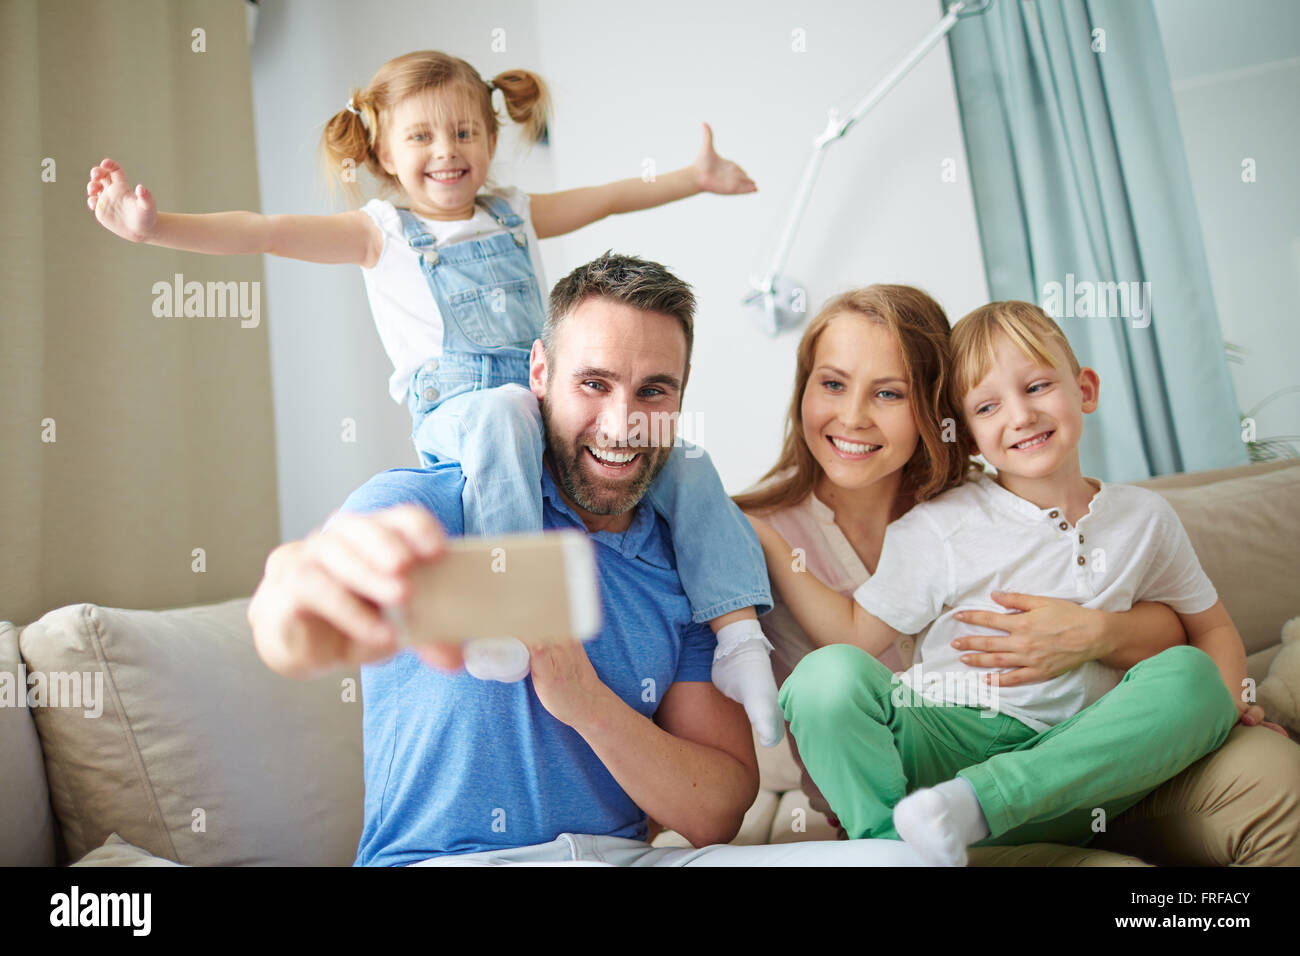 Selfie at home - Stock Image